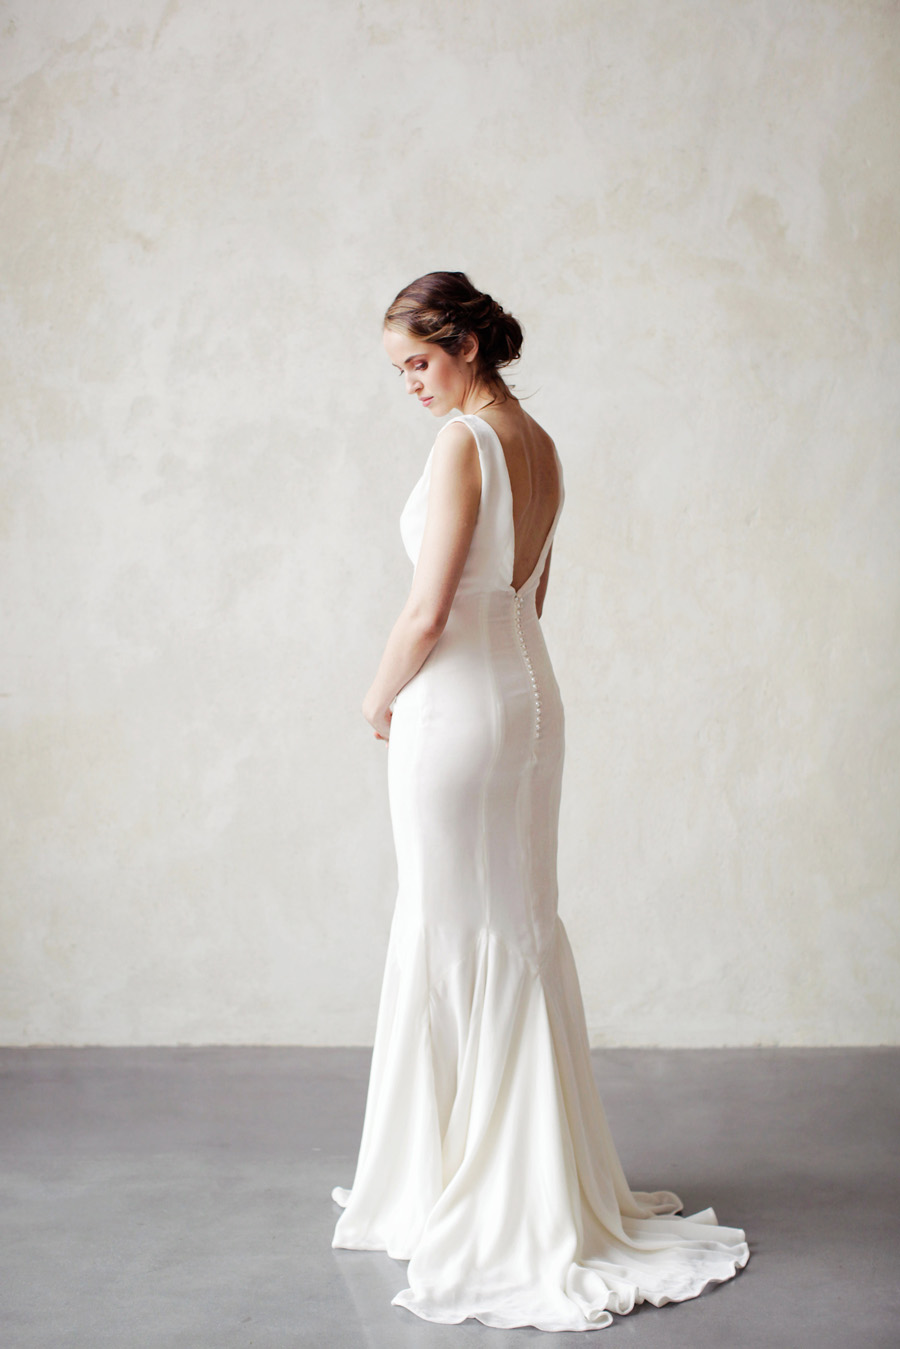 unique and elegant wedding dress ideas with Ailsa Munro, image by Rachel Rose Photography (24)